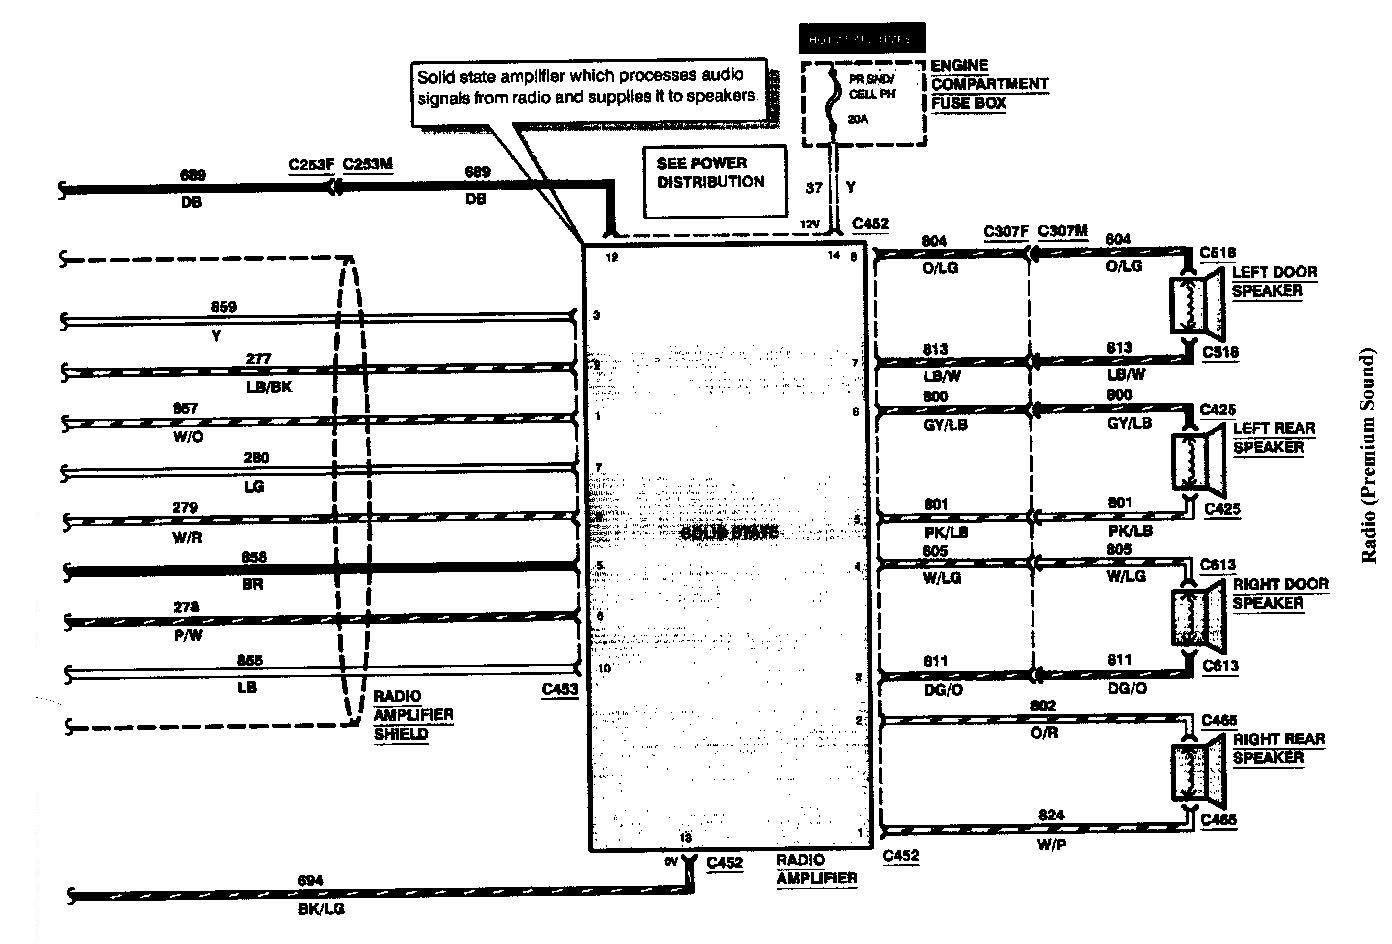 2001 Lincoln Ls Radio Wiring Diagram - 14.16.depo-aqua.de • on lincoln ls engine swap, stereo wiring diagram, lincoln ls water pump, lincoln ls engine diagram, lincoln ls headers, lincoln ls transmission diagram, lincoln ls codes, 2 channel amp wiring diagram, lincoln ls speakers, lincoln ls wire diagram, lincoln ls stereo, light wiring diagram, lincoln ls thermostat diagram, lincoln ls wiring harness, lincoln ls timing chain diagram, lincoln continental wiring-diagram, lincoln ls fuel tank, lincoln ls manual, lincoln ls battery, lincoln ls power steering,